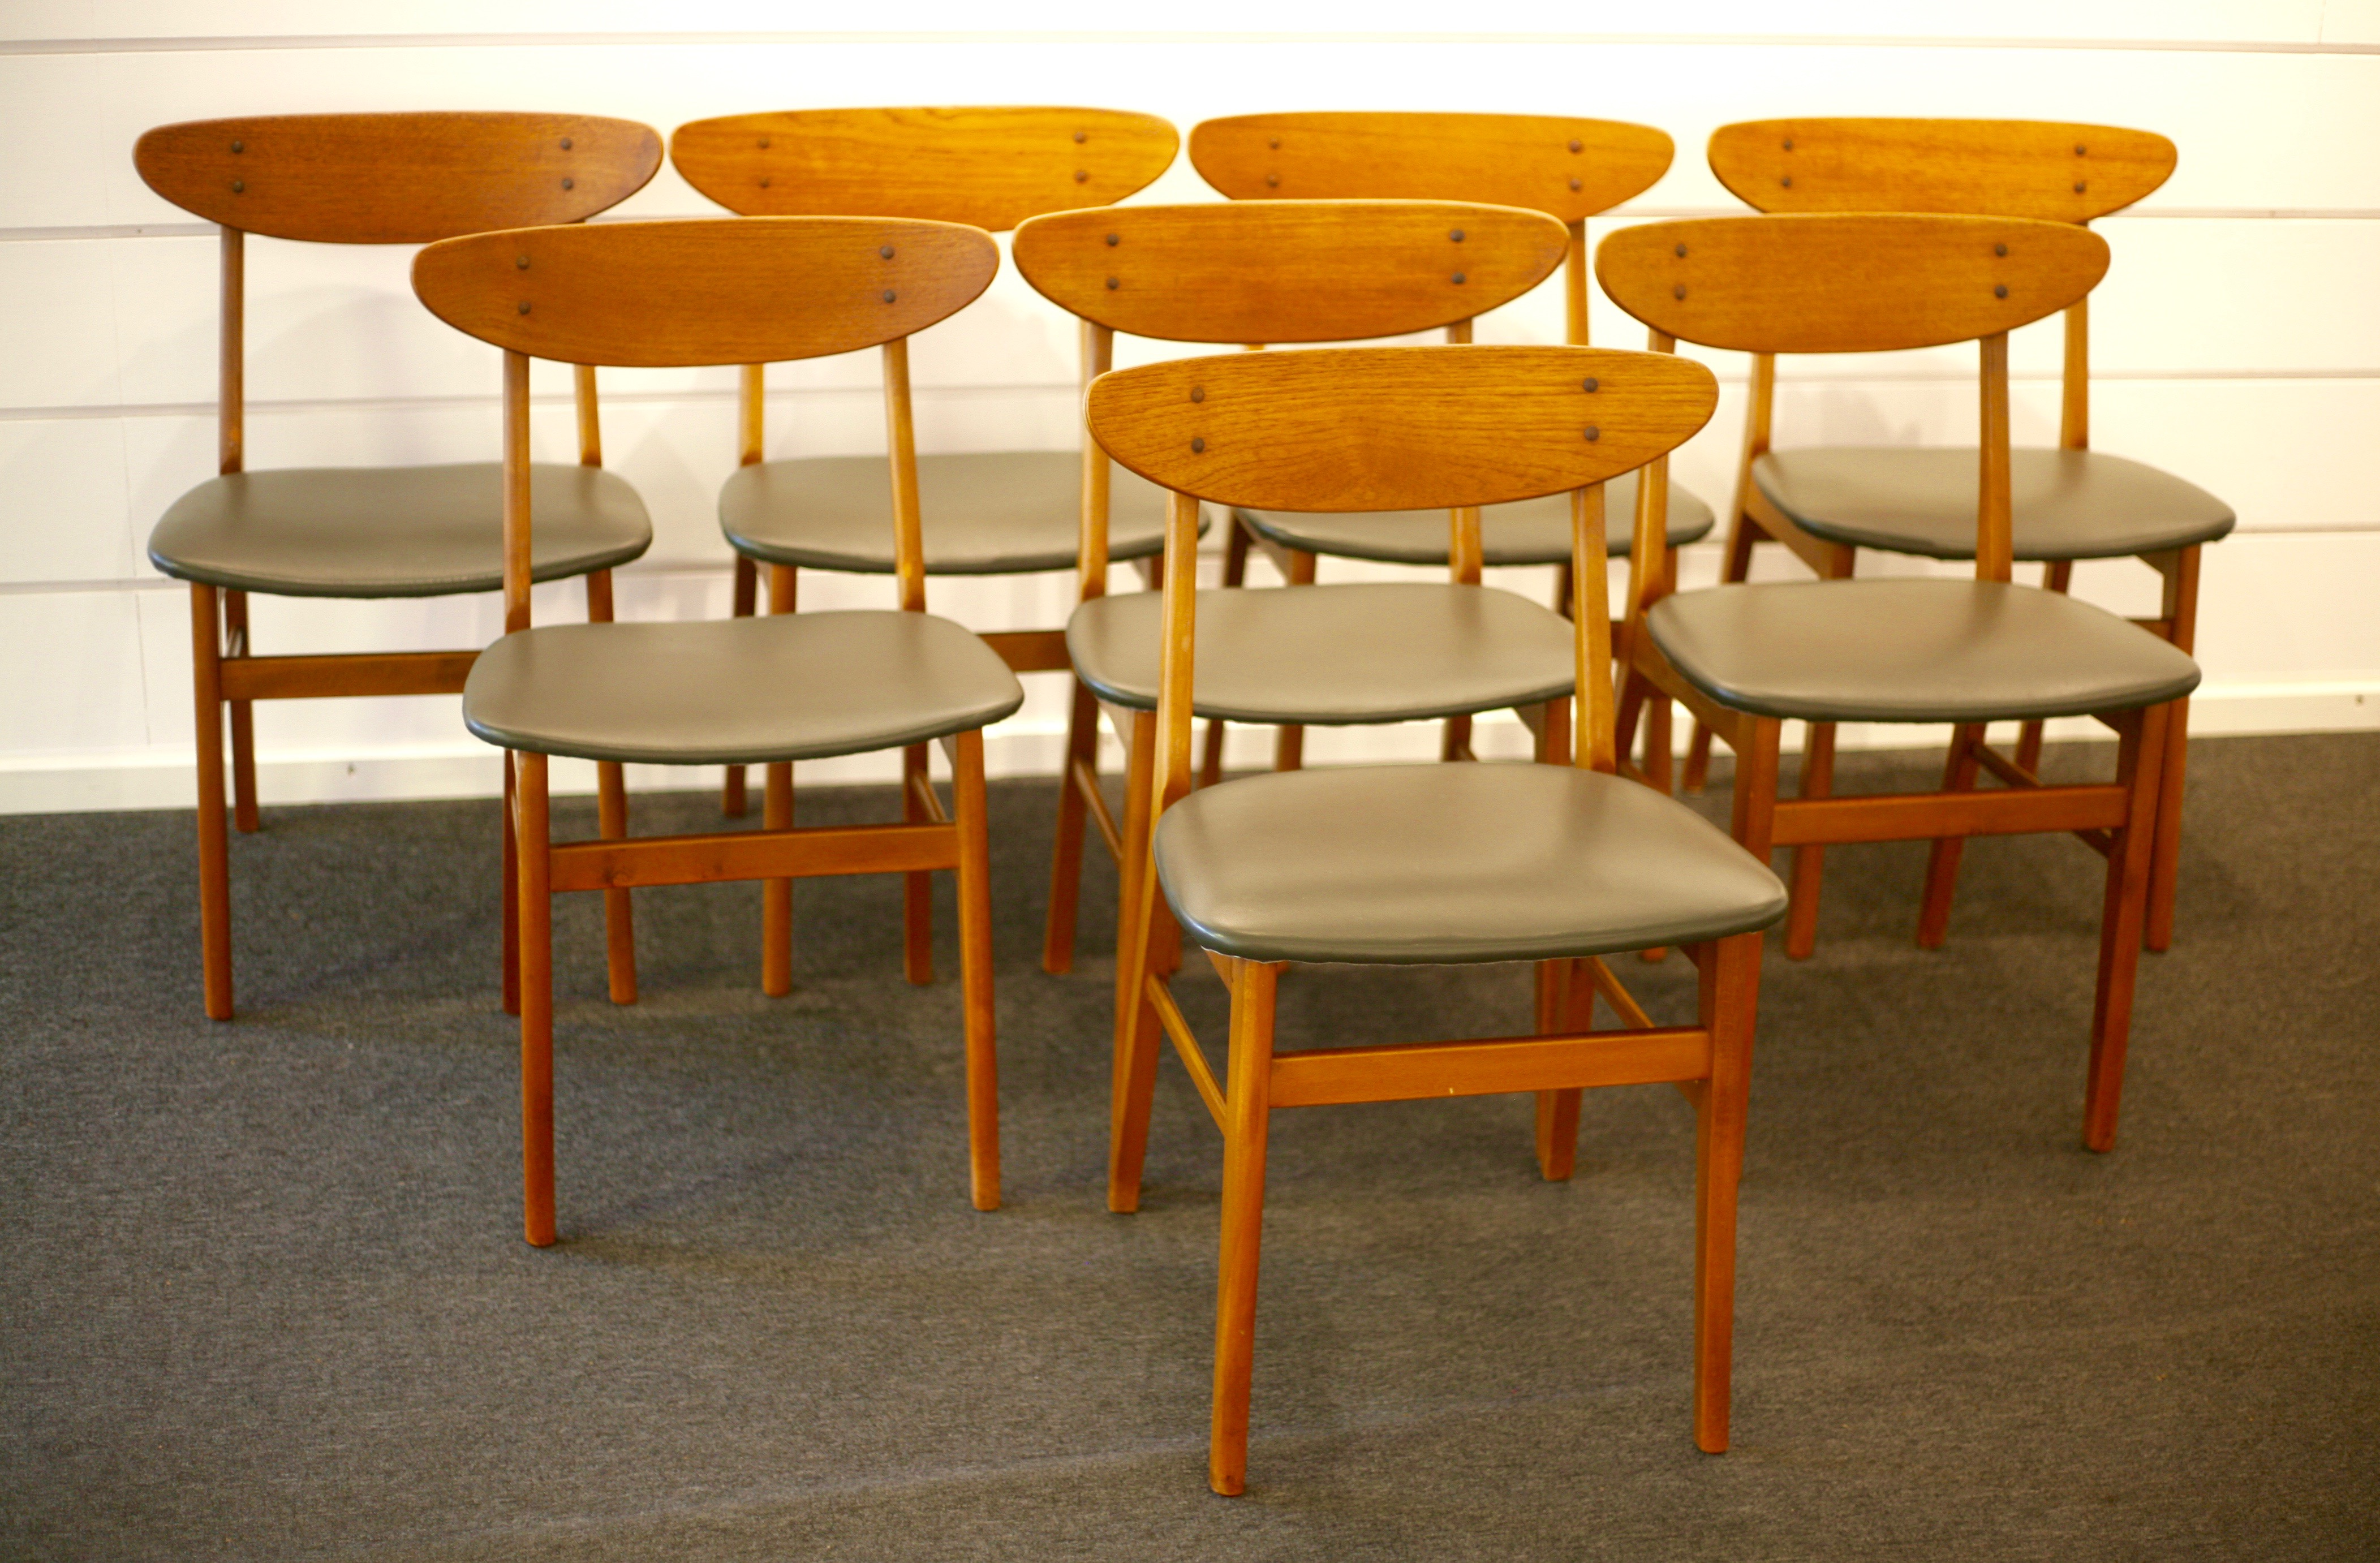 Set of 8 dining chairs, Monaco, by Thomas Harlev for Farstrup, Denmark